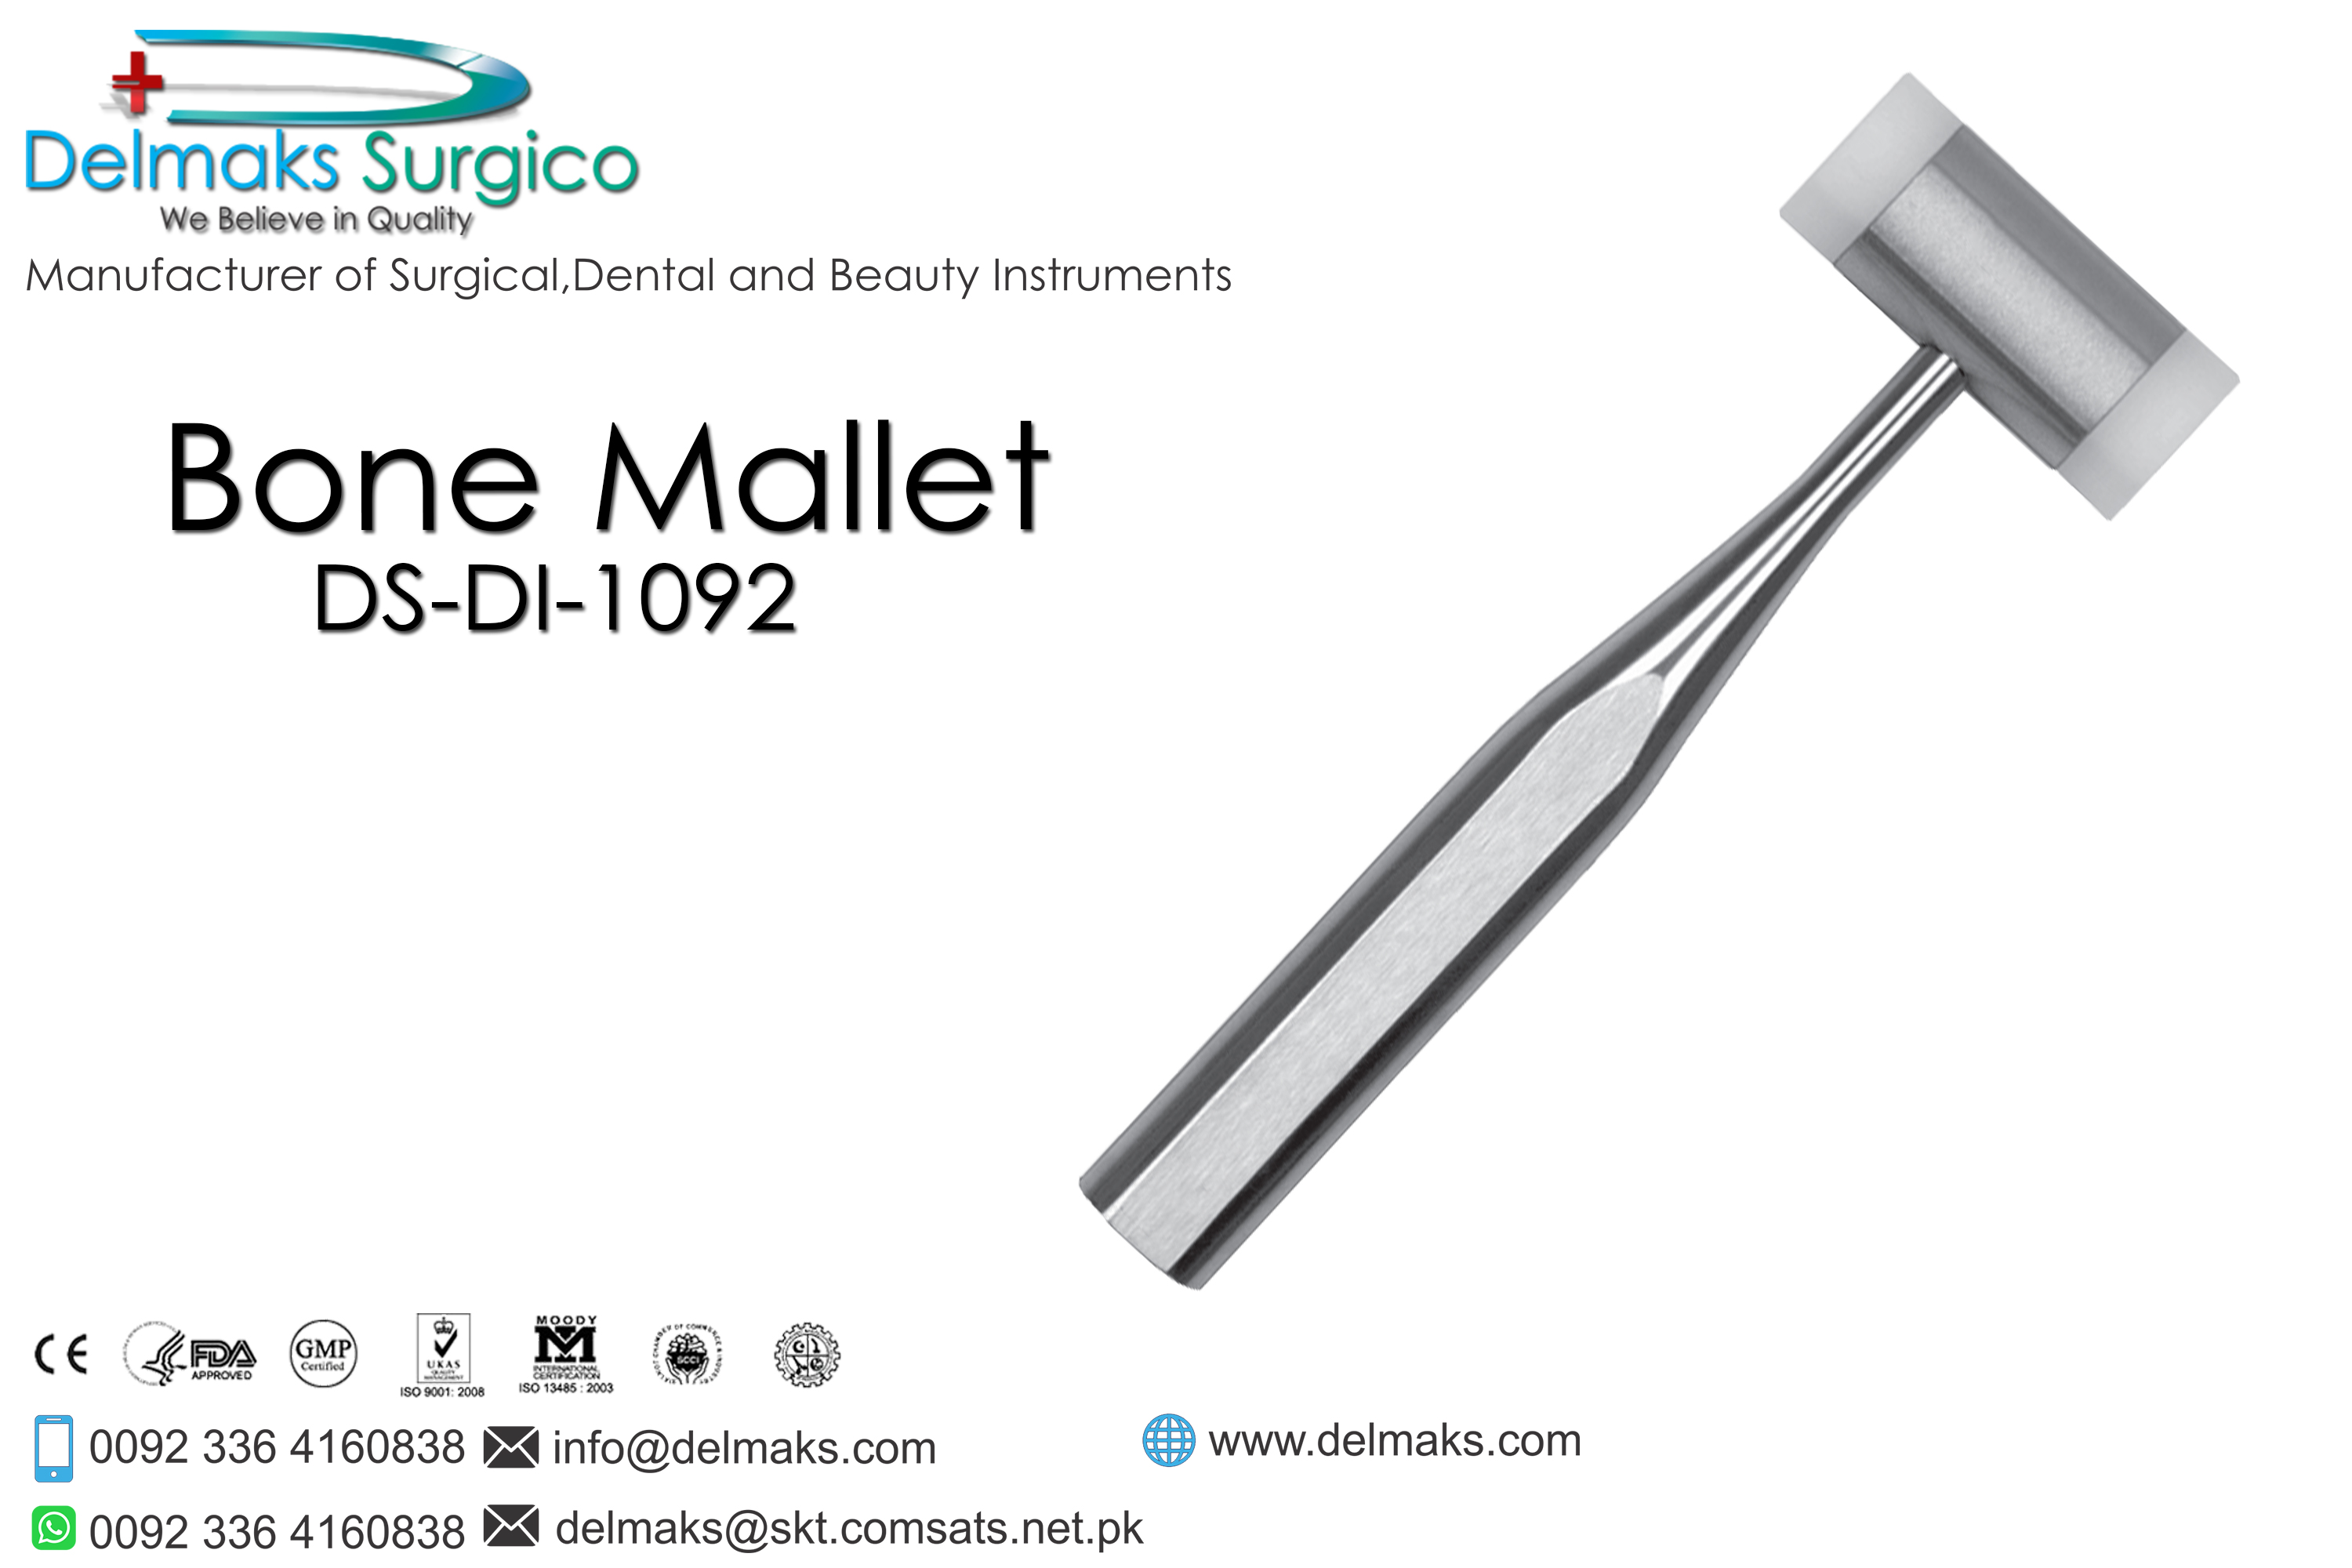 Bone Mallet-Oral And Maxillofacial Surgery Instruments-Dental Instruments-Delmaks Surgico